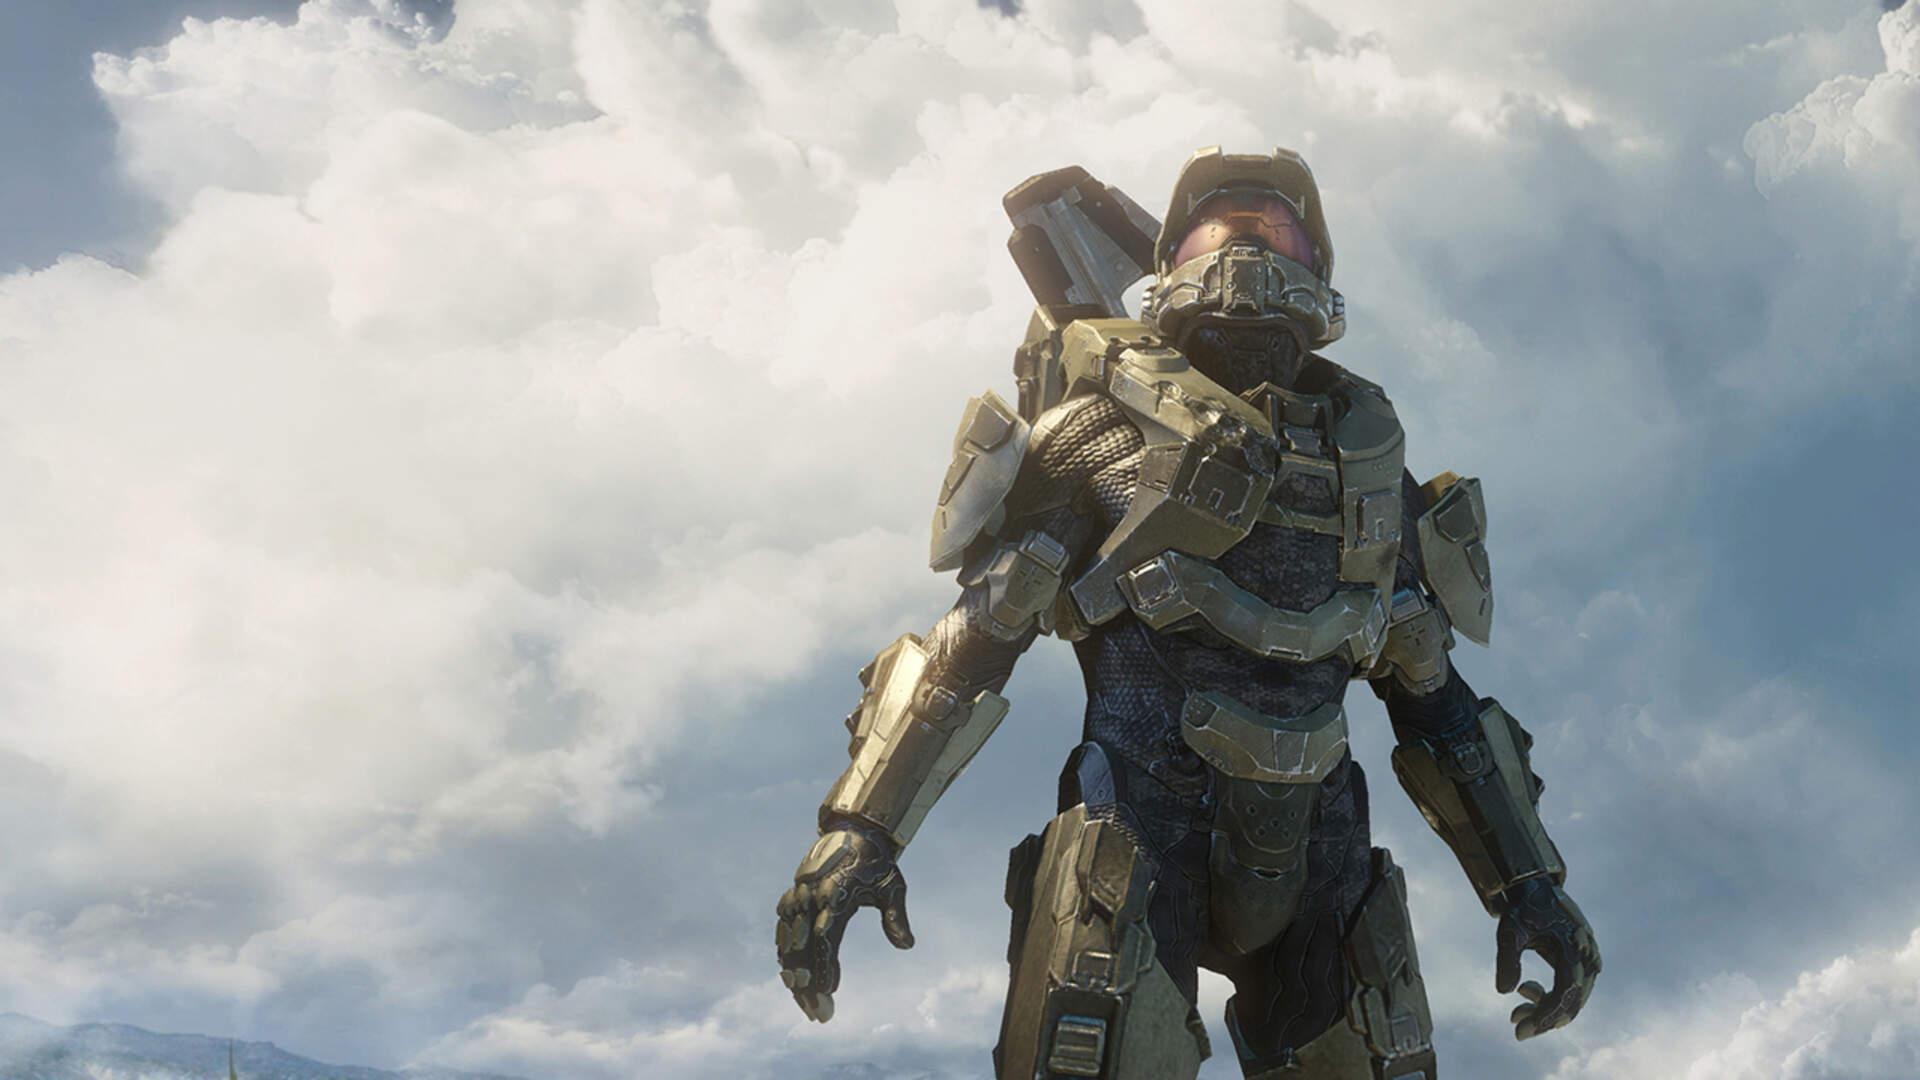 Halo 4 Will Debut on the PC Master Chief Collection Next Week